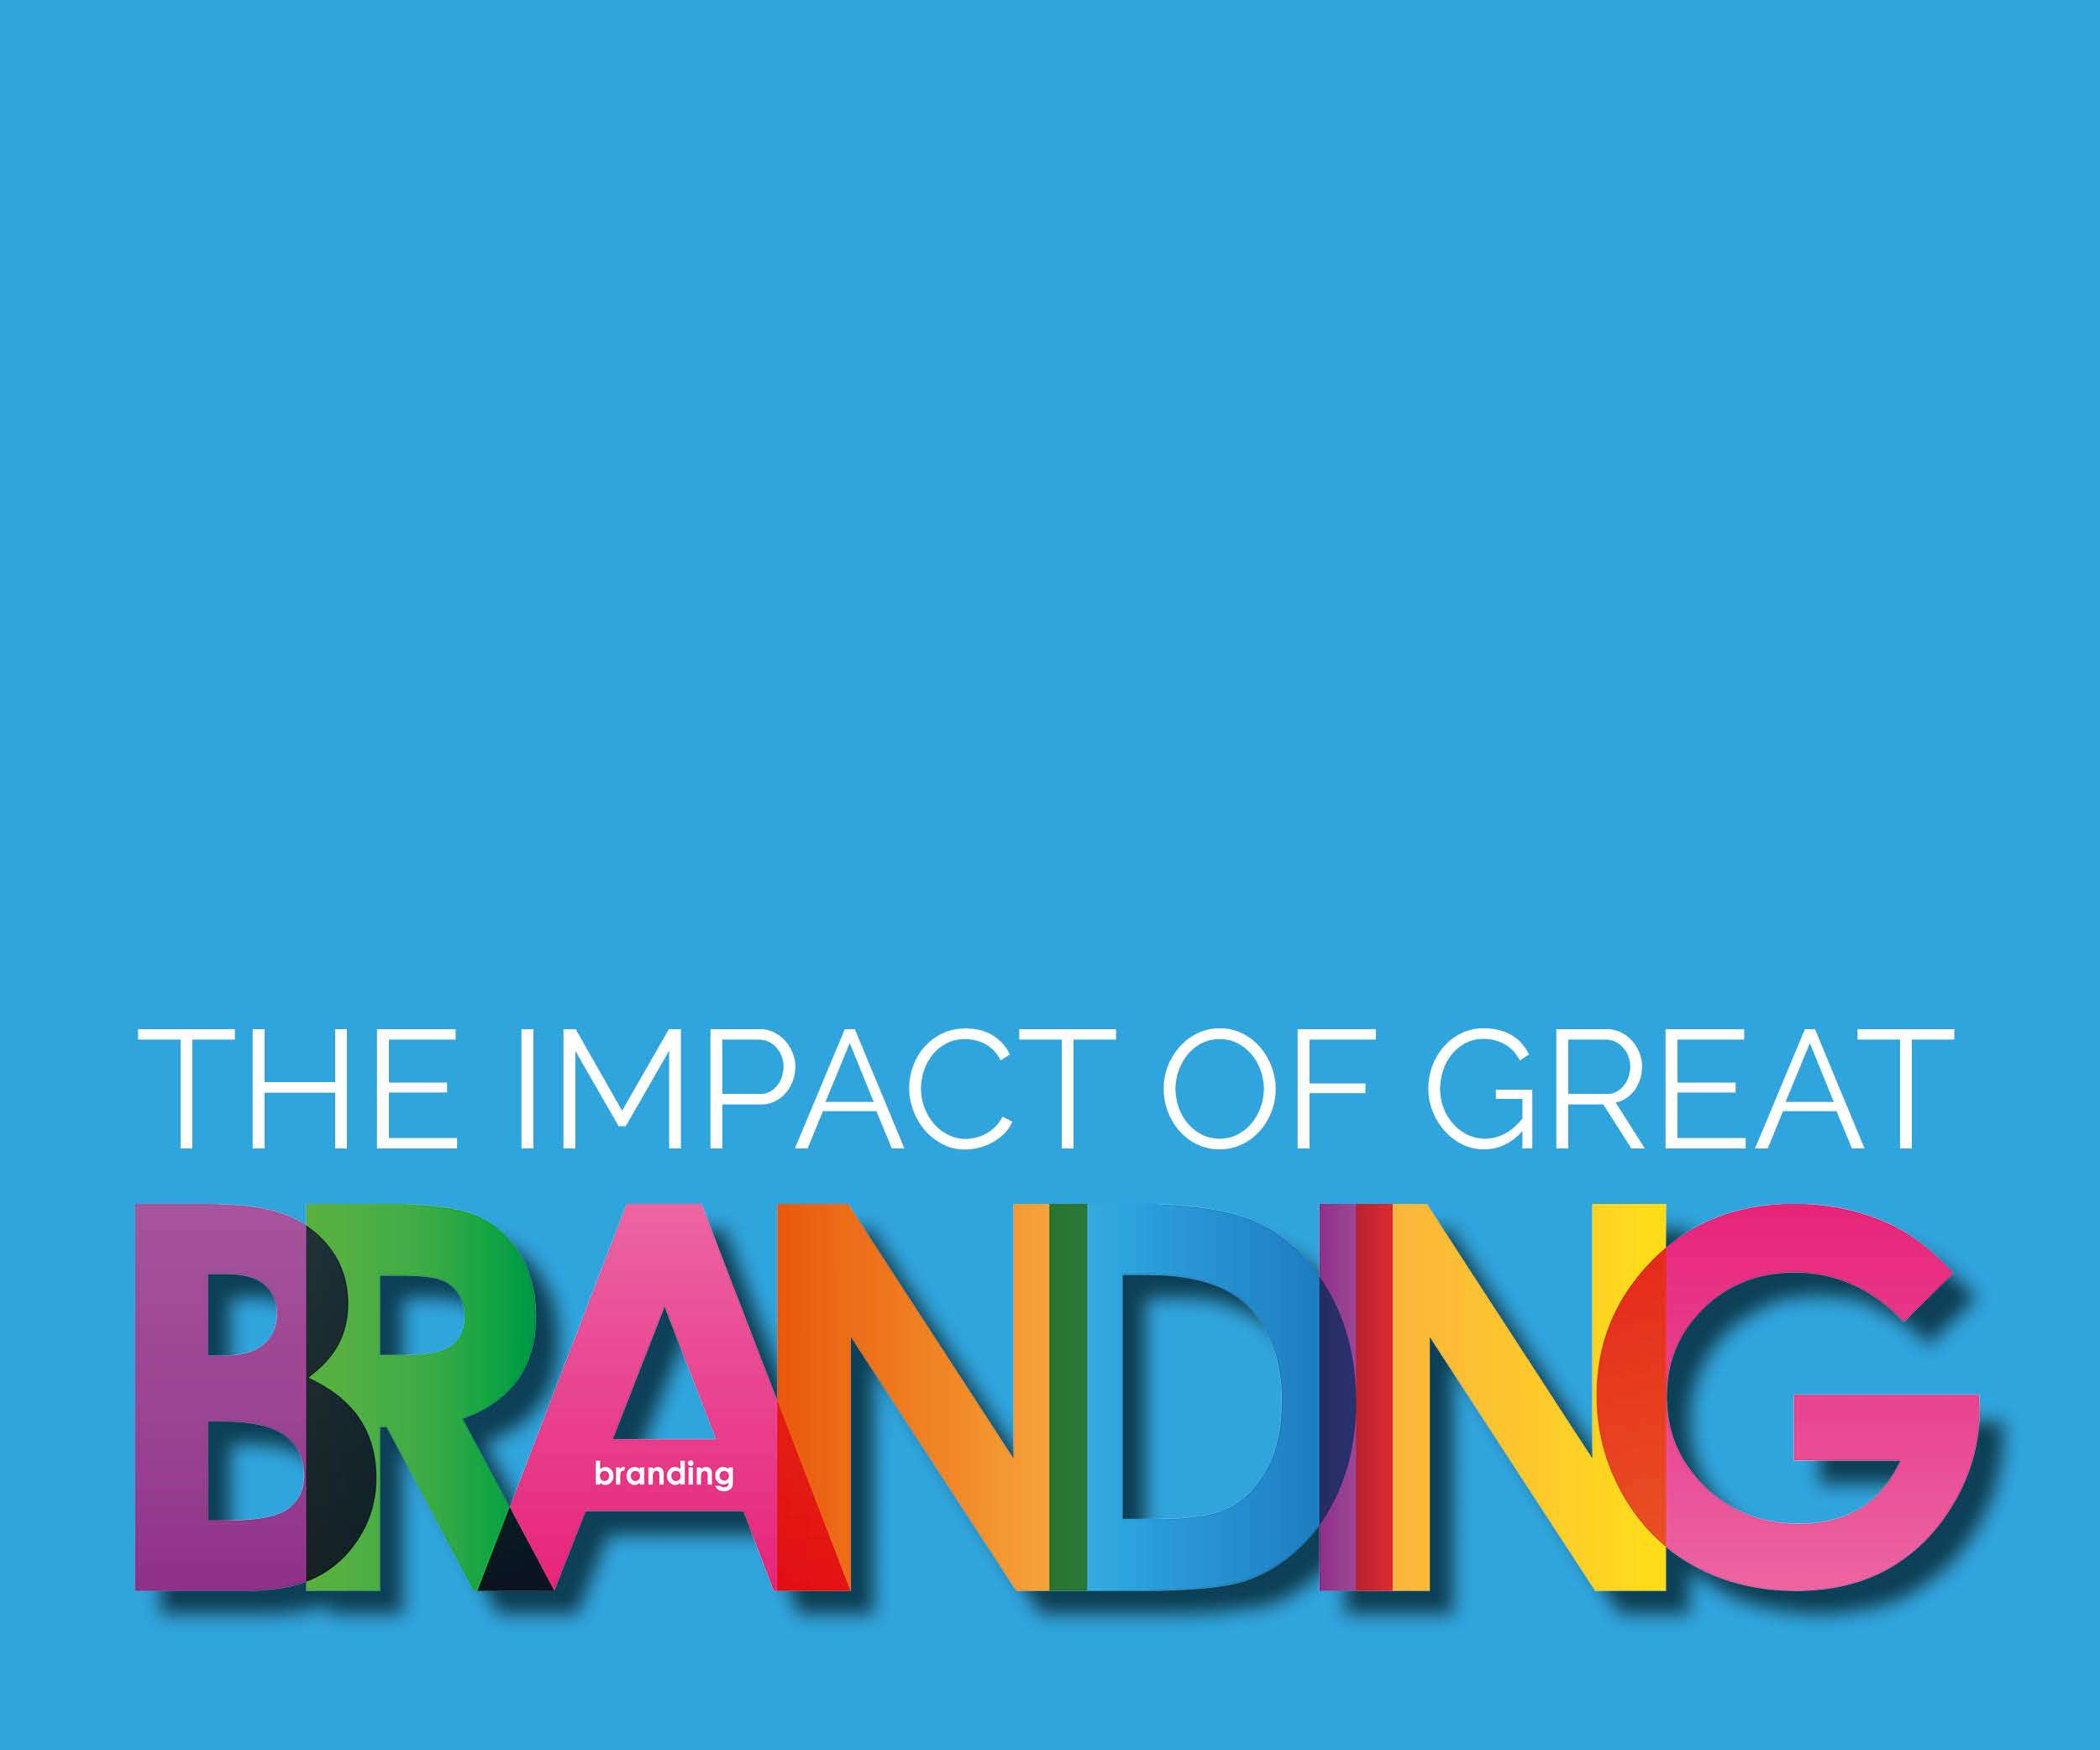 The impact of great branding